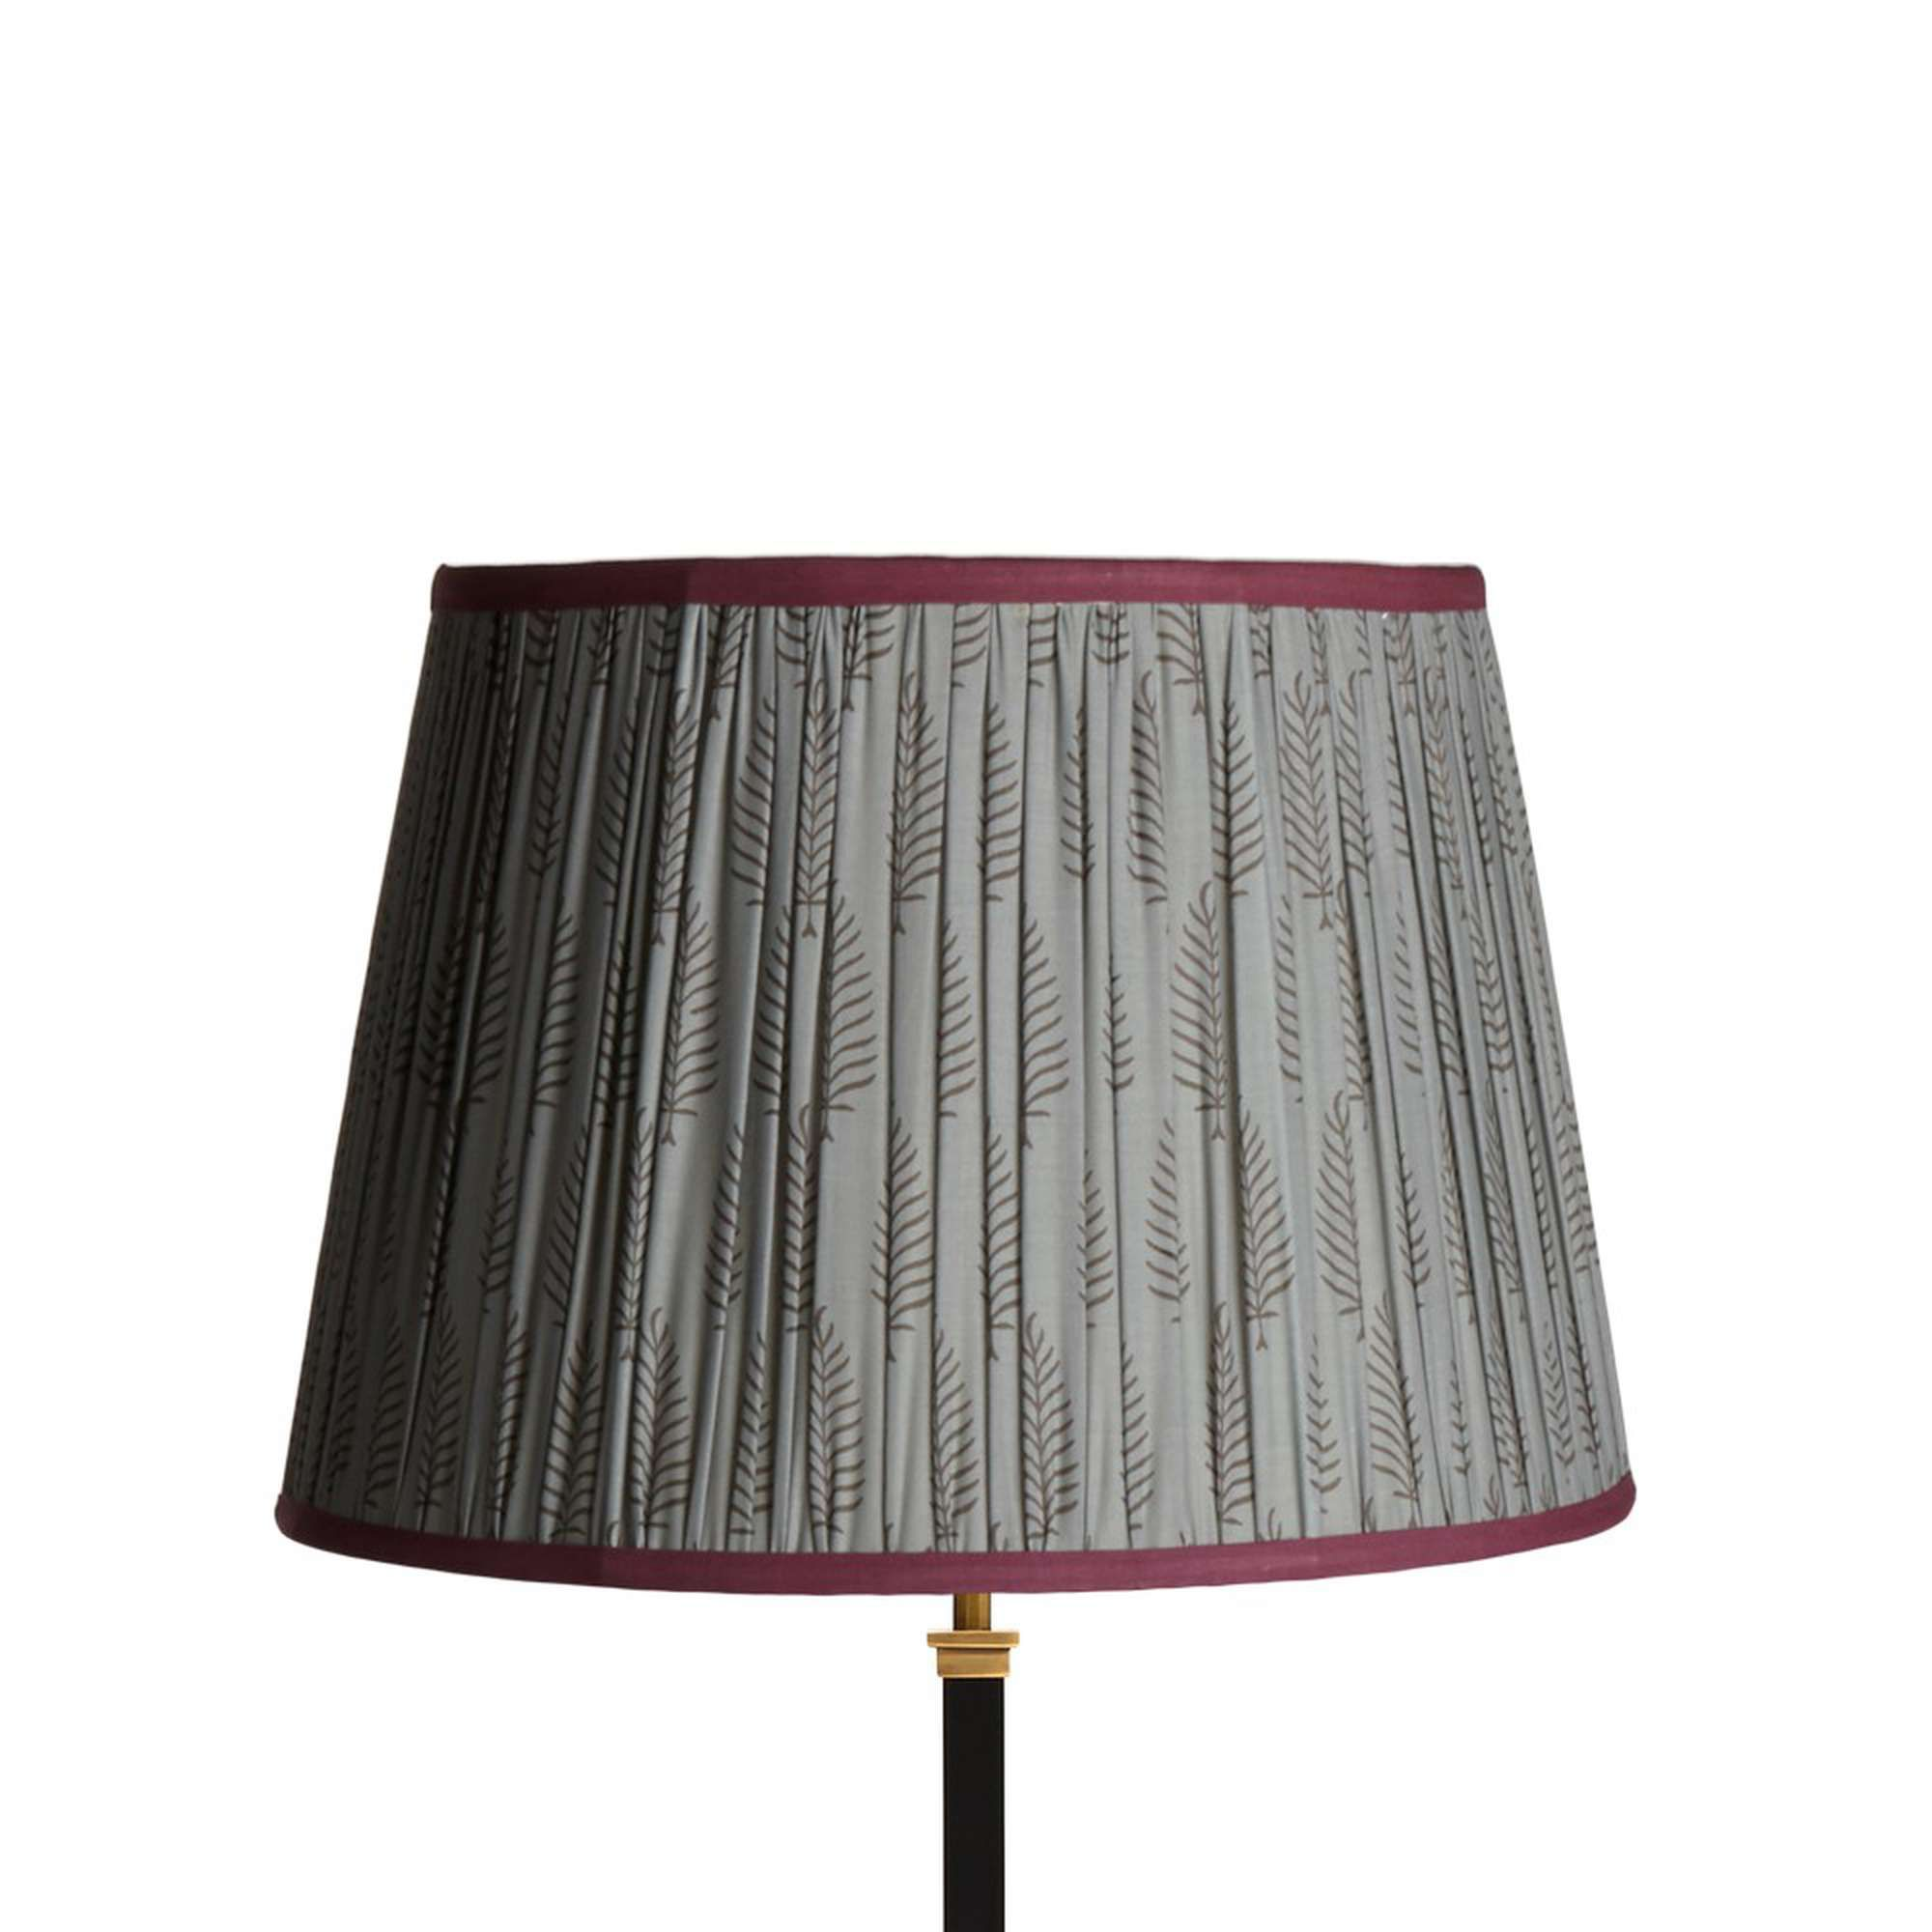 40cm straight empire lampshade in balinese ferns block printed cotton with pinky purple tape